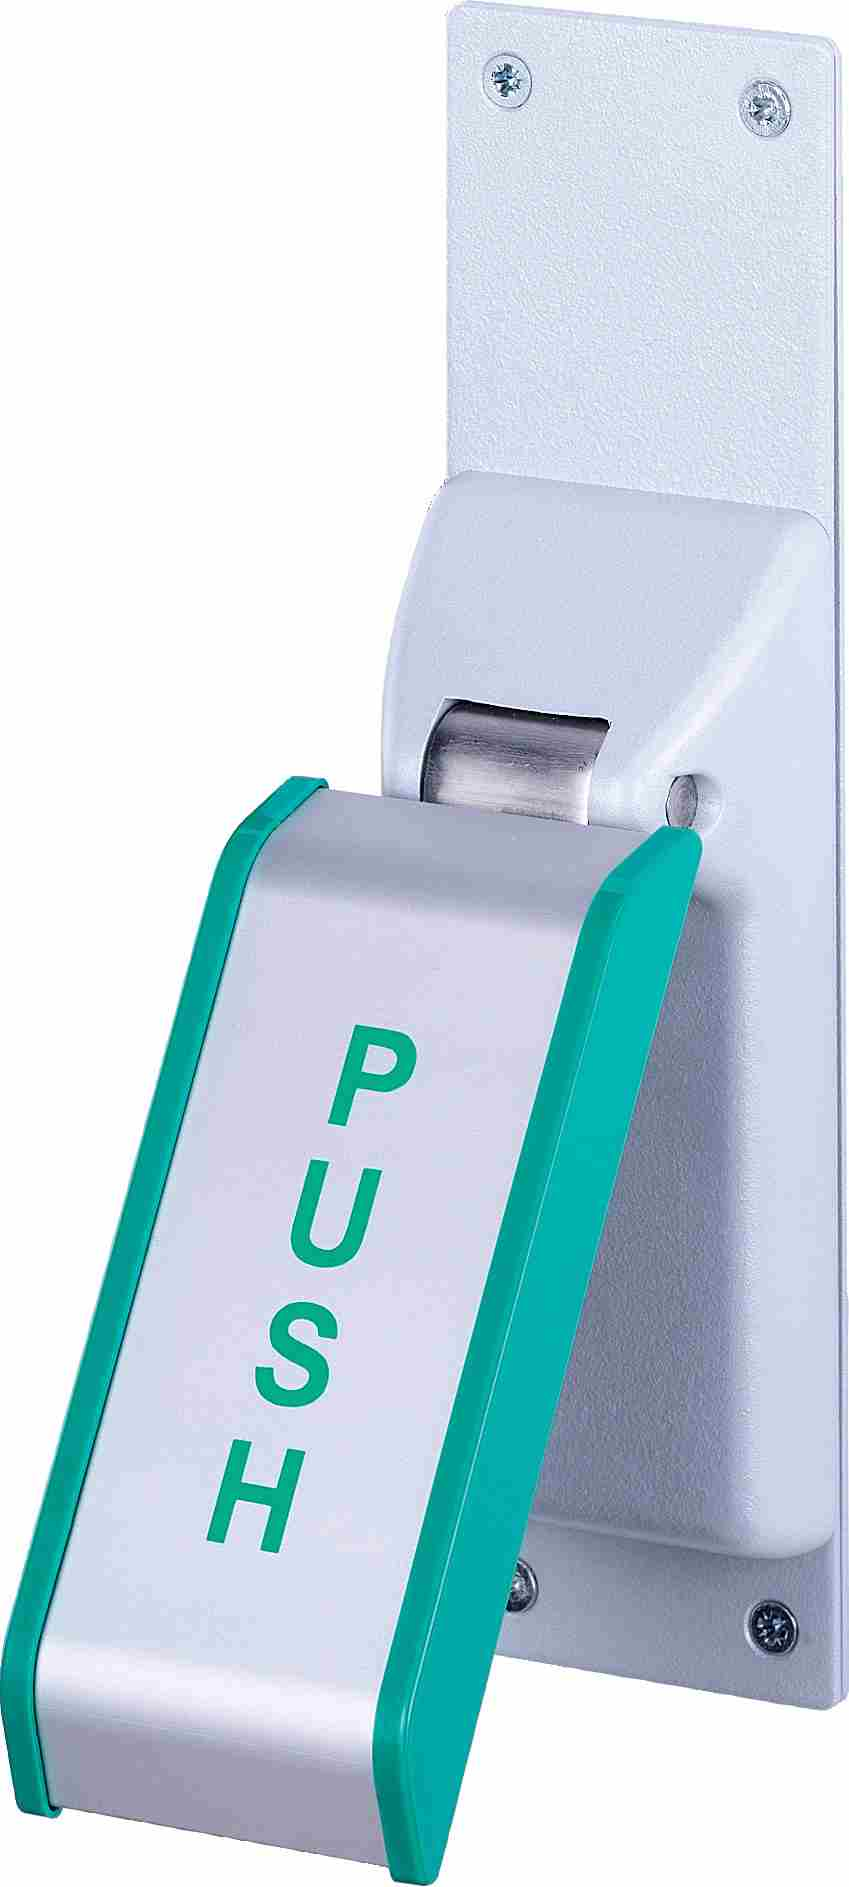 Panic locks and latches / ASSURE panic hardware Light-action push pads which operate mortice escape sash locks or nightlatches. ASSURE offers very high security.